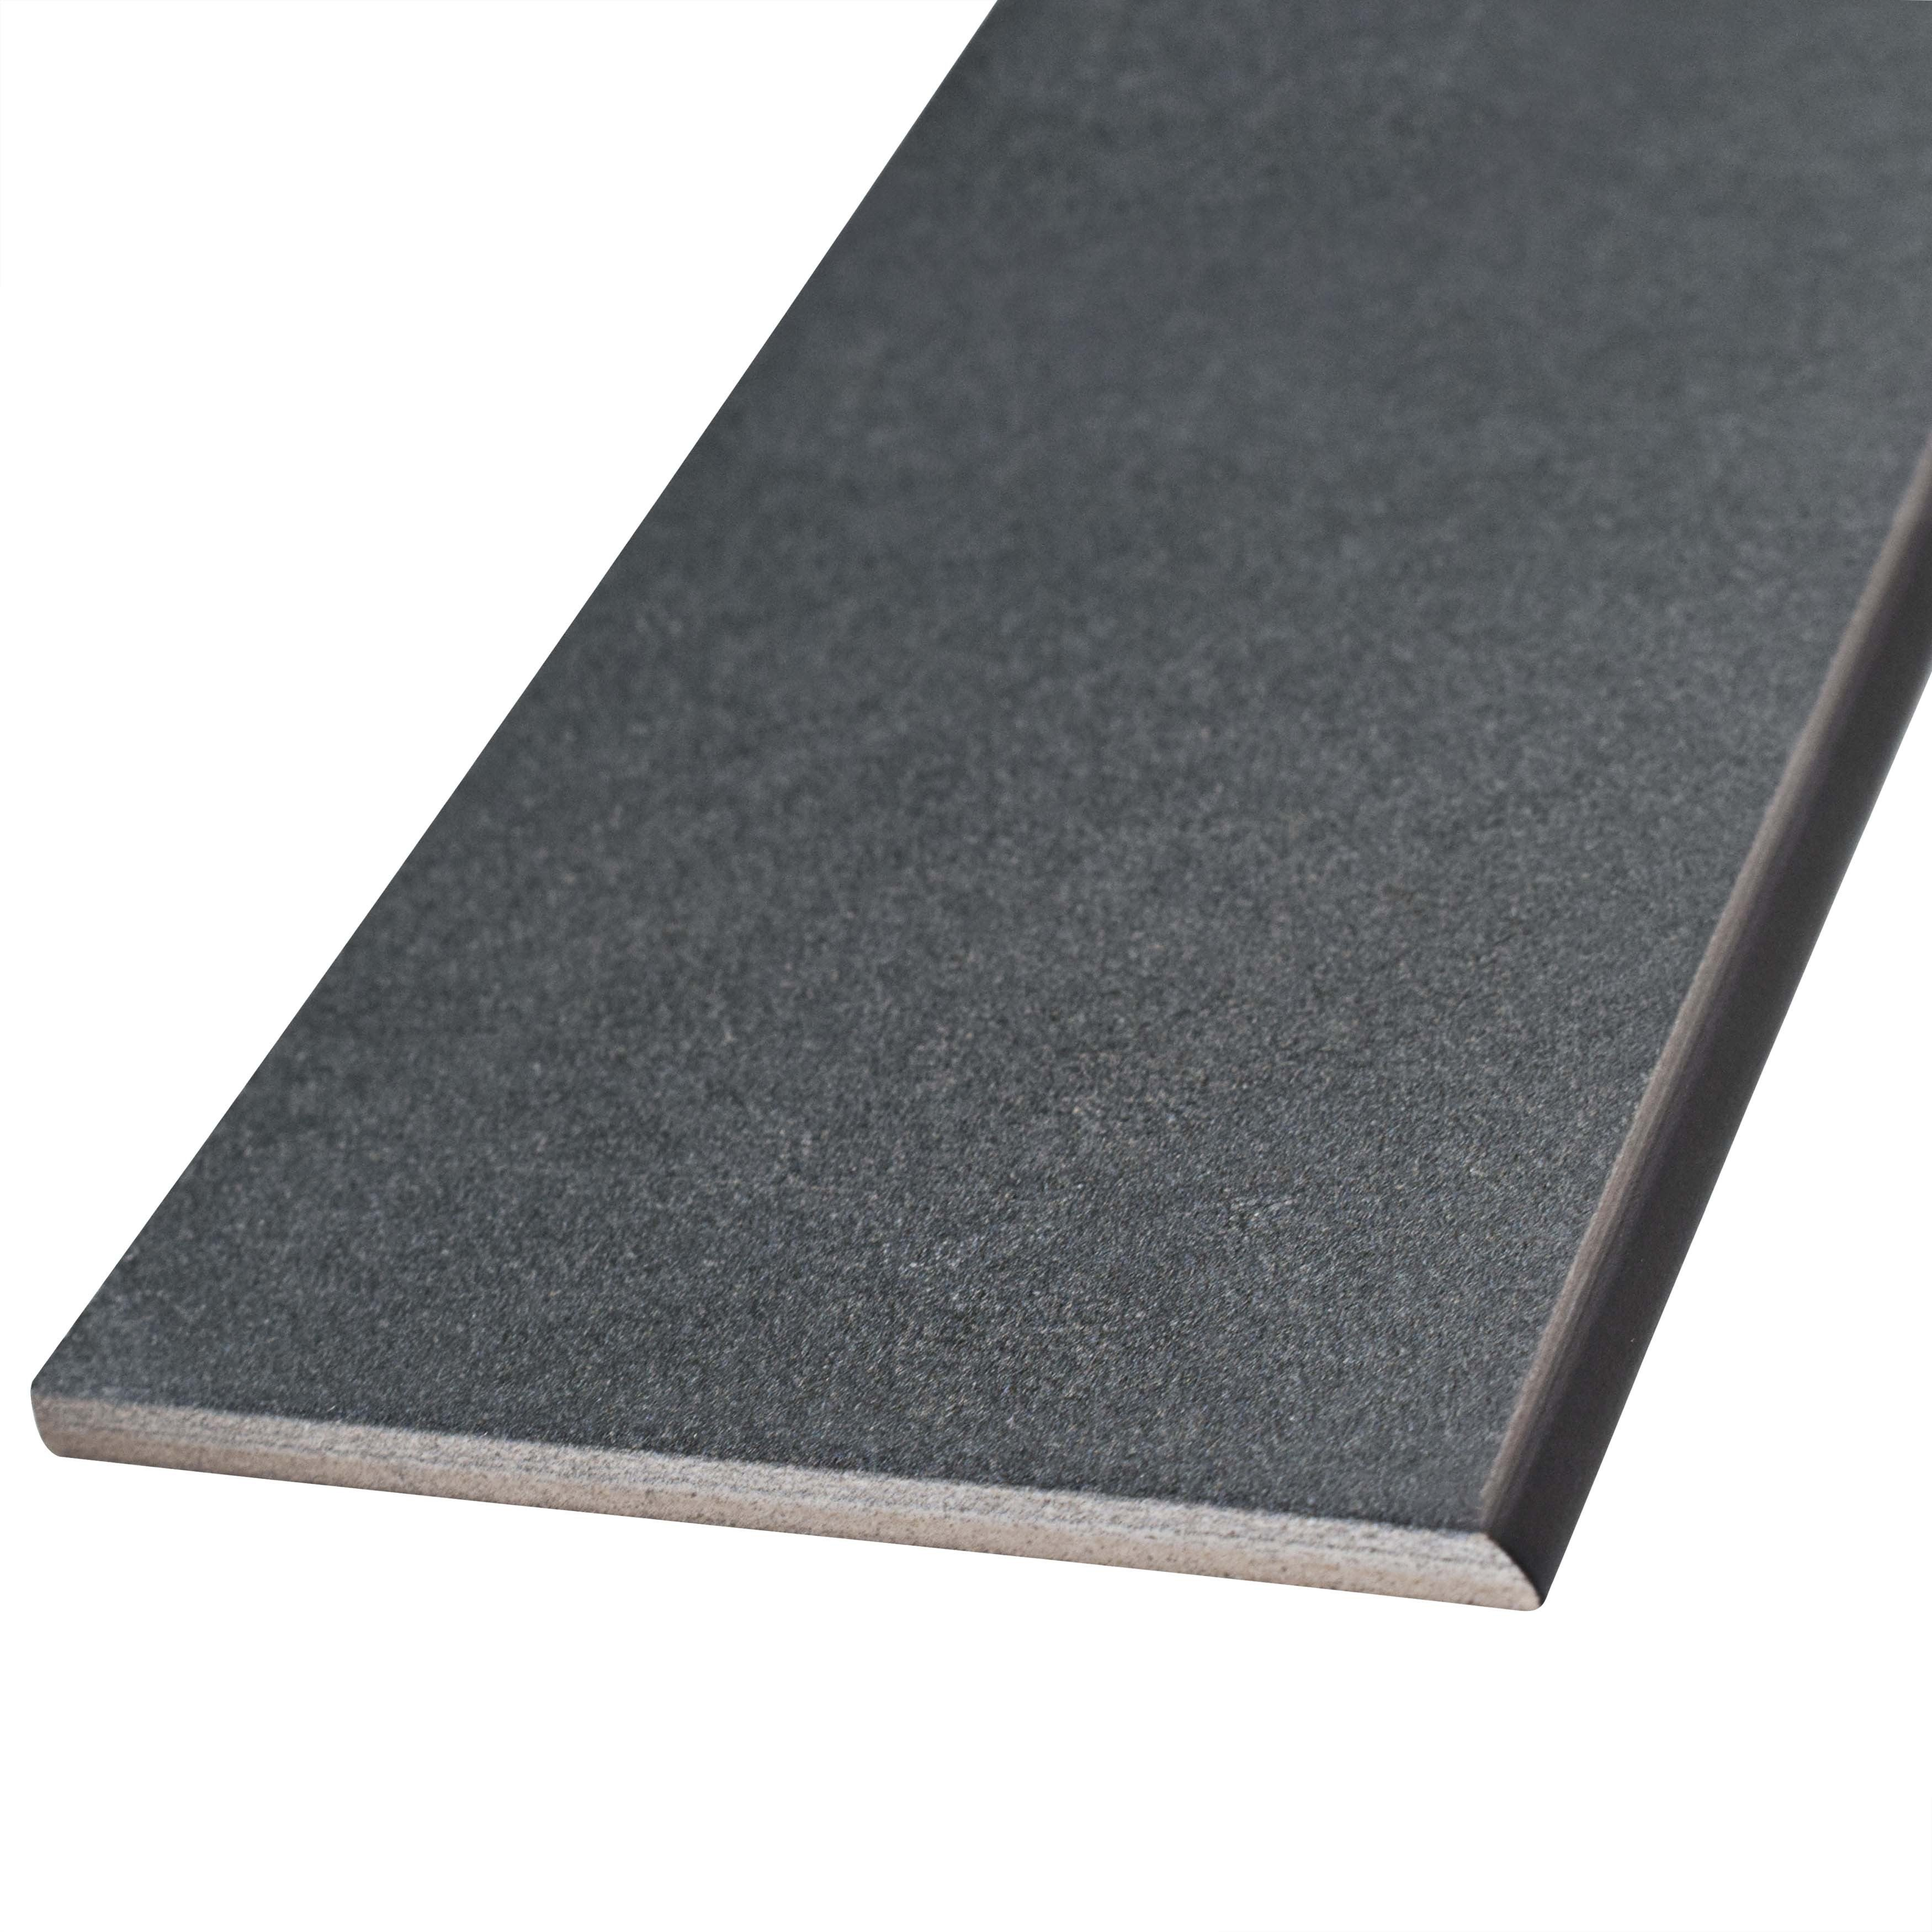 Somertile 35x775 inch thirties black ceramic bullnose floor and somertile 35x775 inch thirties black ceramic bullnose floor and wall trim tile 5 tiles free shipping on orders over 45 overstock 21049692 dailygadgetfo Choice Image